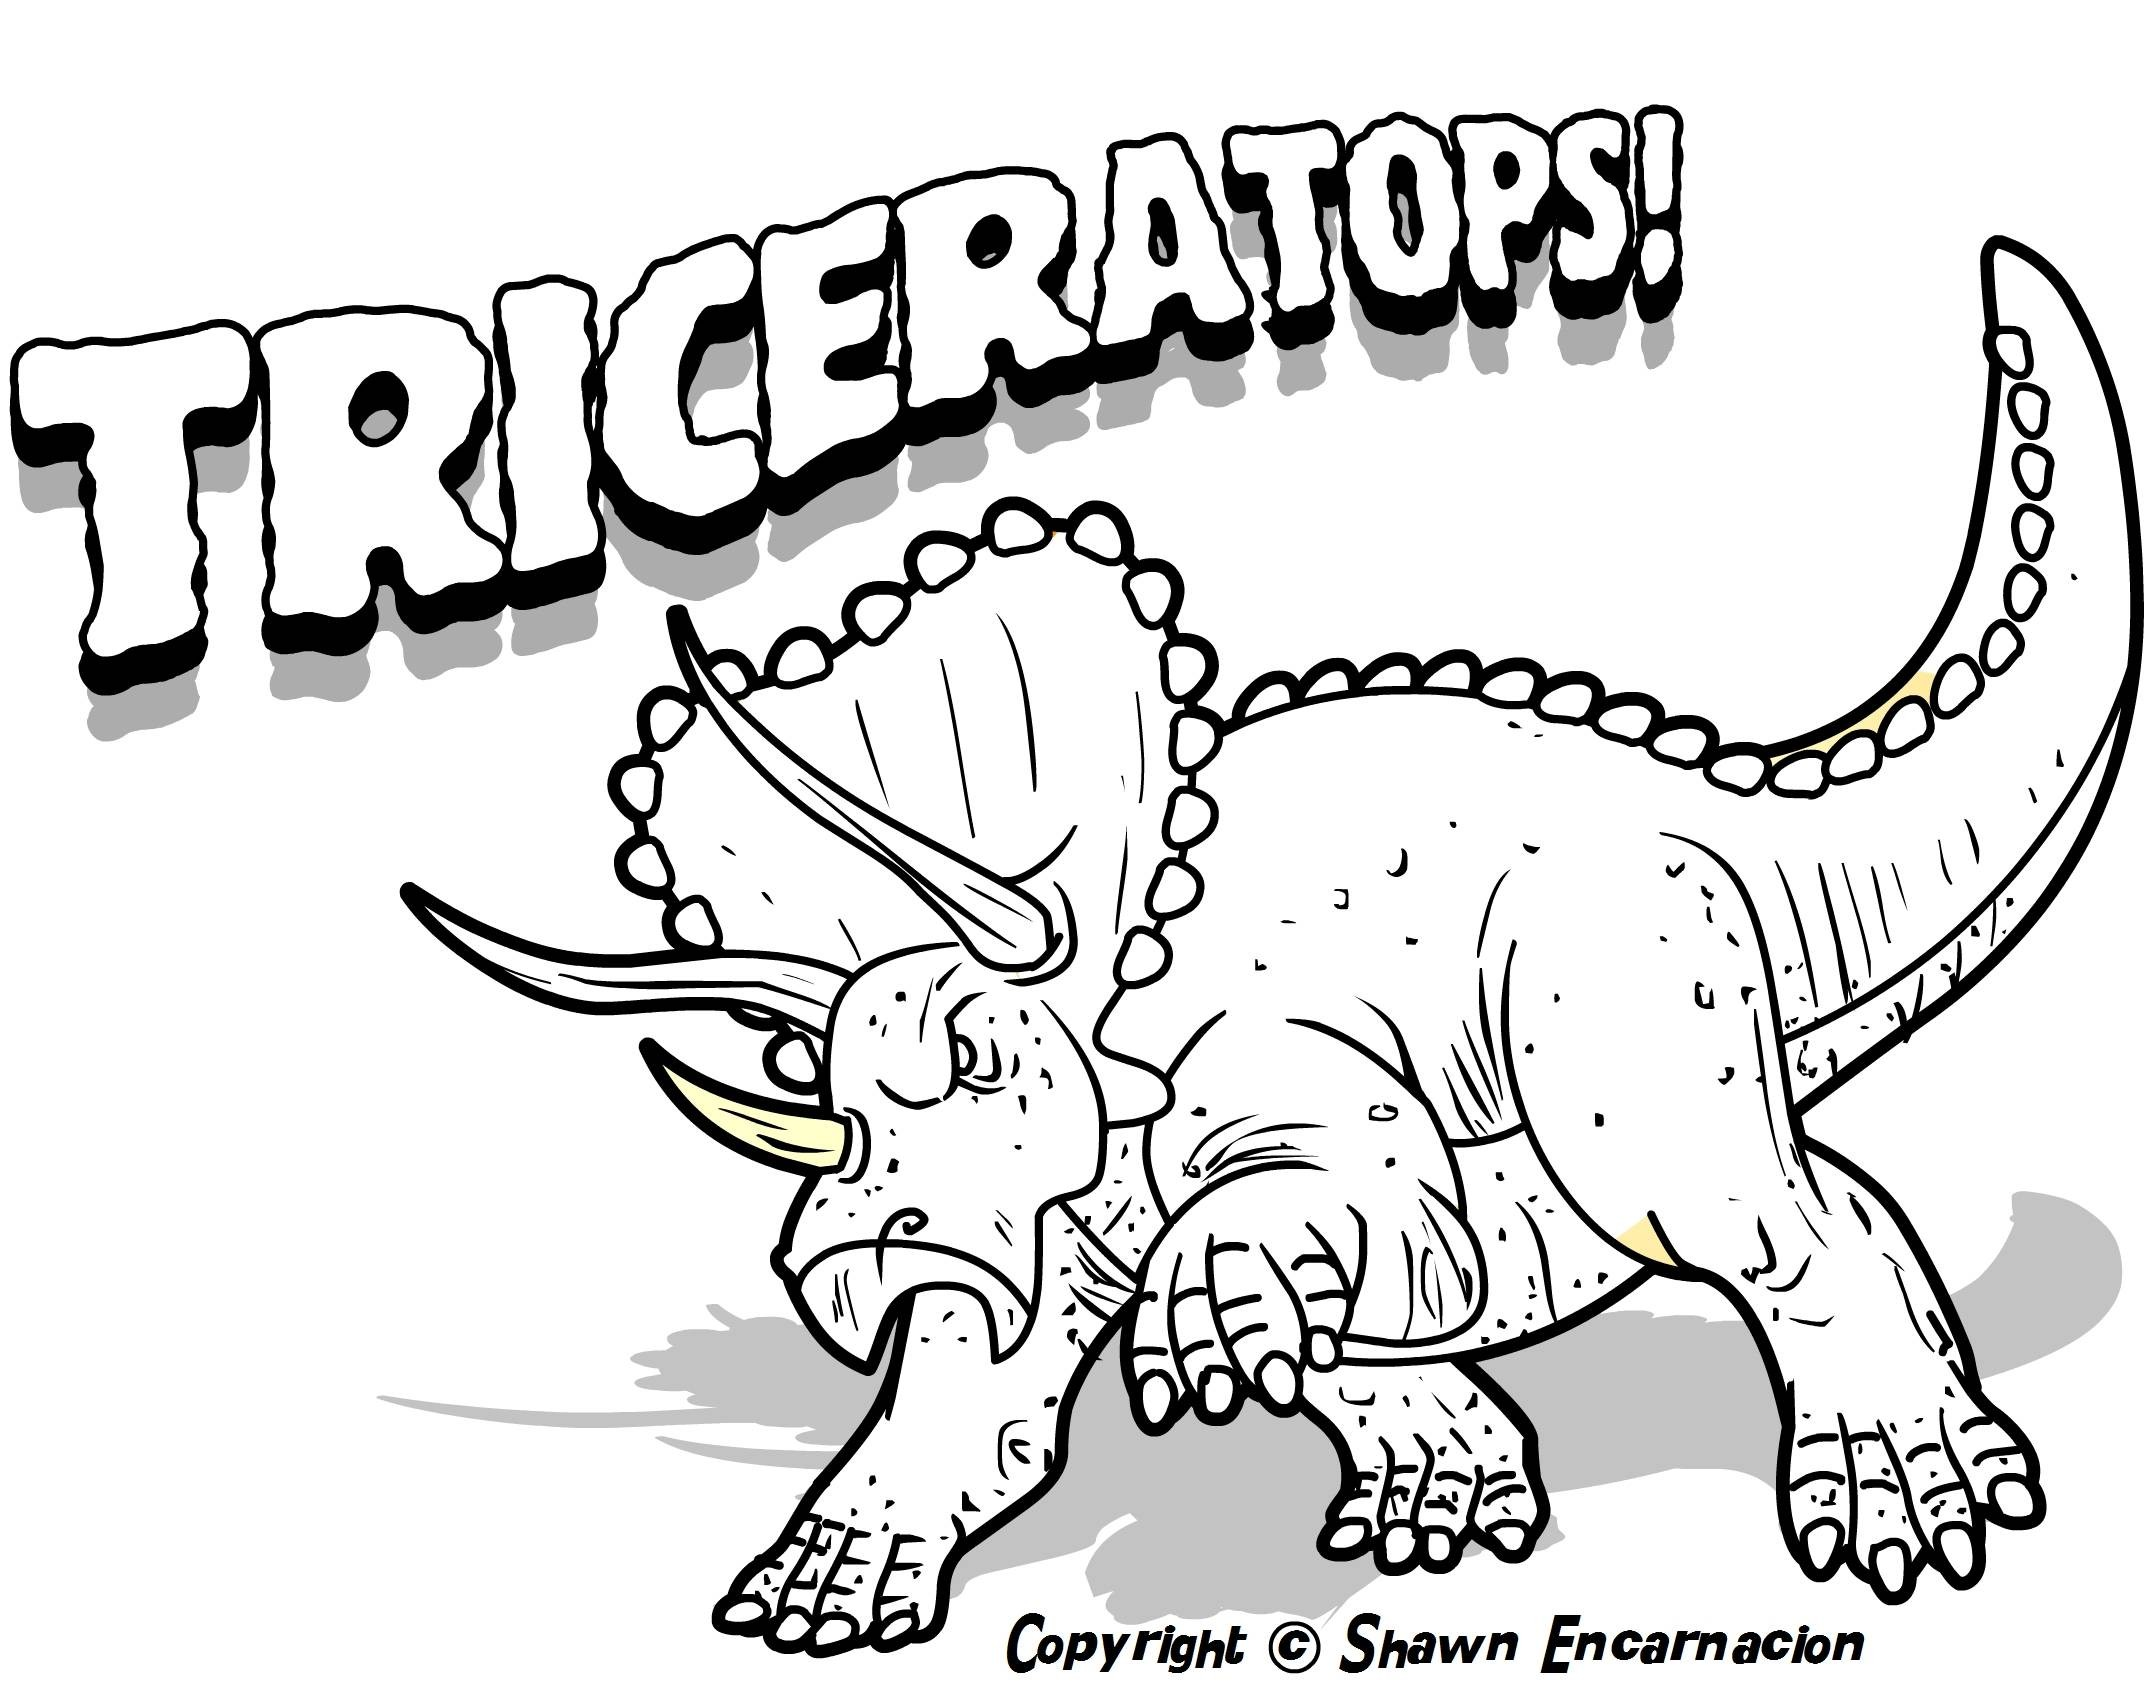 Dino Drawing at GetDrawings.com | Free for personal use Dino Drawing ...